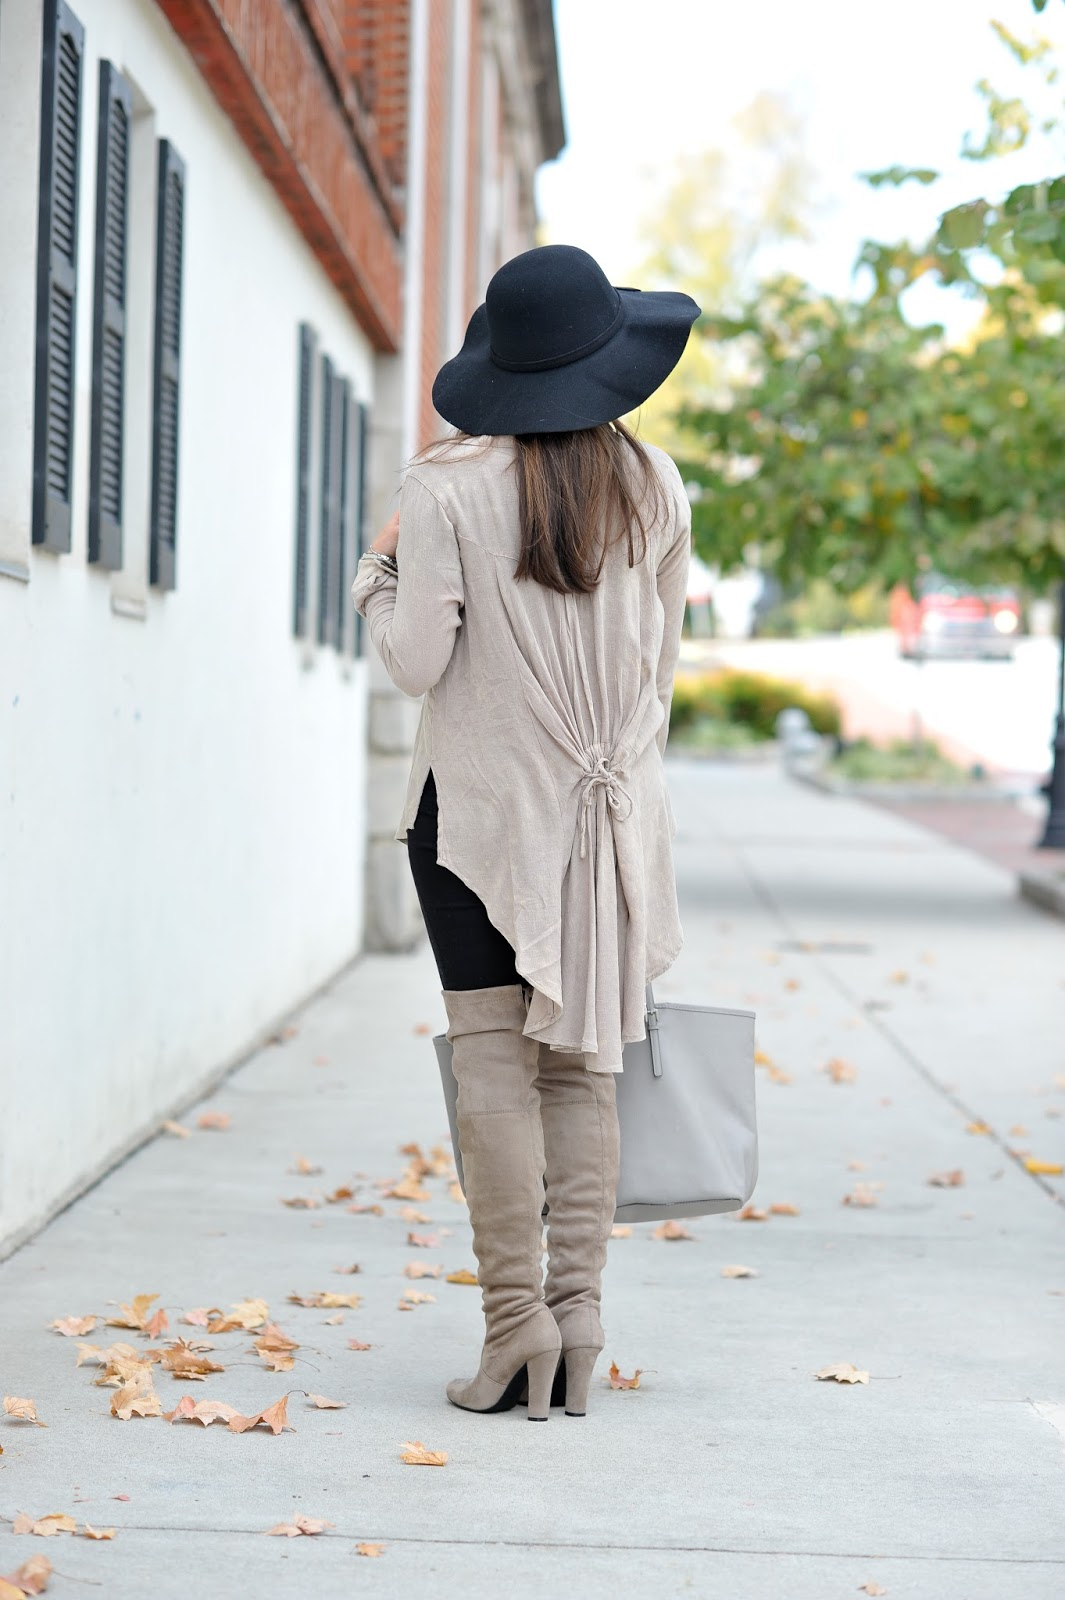 Fall Neutrals from Zaful, fall fashion, fall outfit ideas, over the knee boots, atlanta style blogger, outfit of the day, thanksgiving outfit ideas